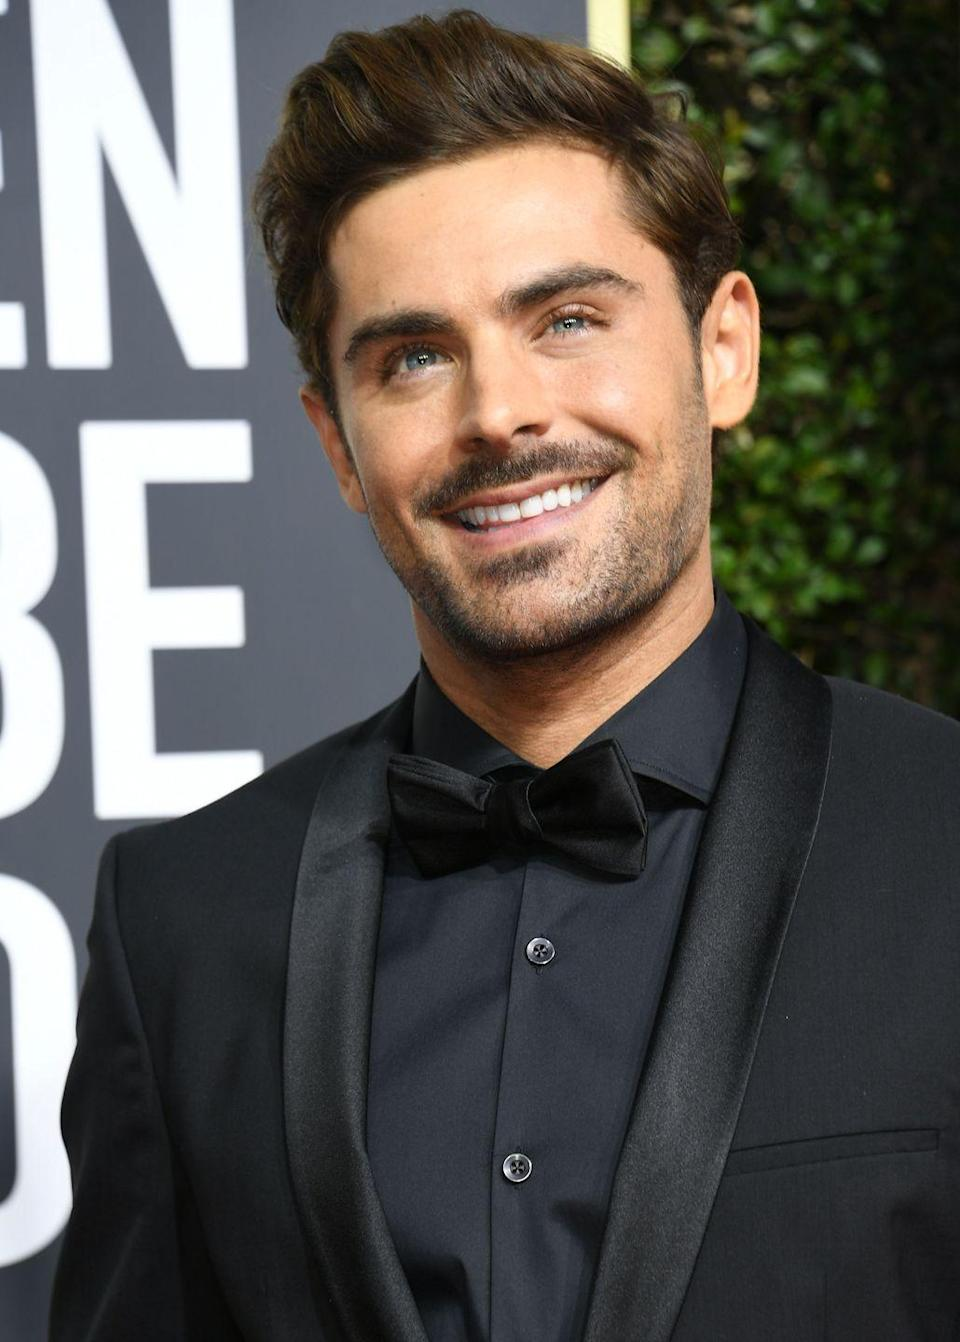 <p>Recently, Efron has been serving up lots of scruff on the red carpet, which makes him appear older.</p>